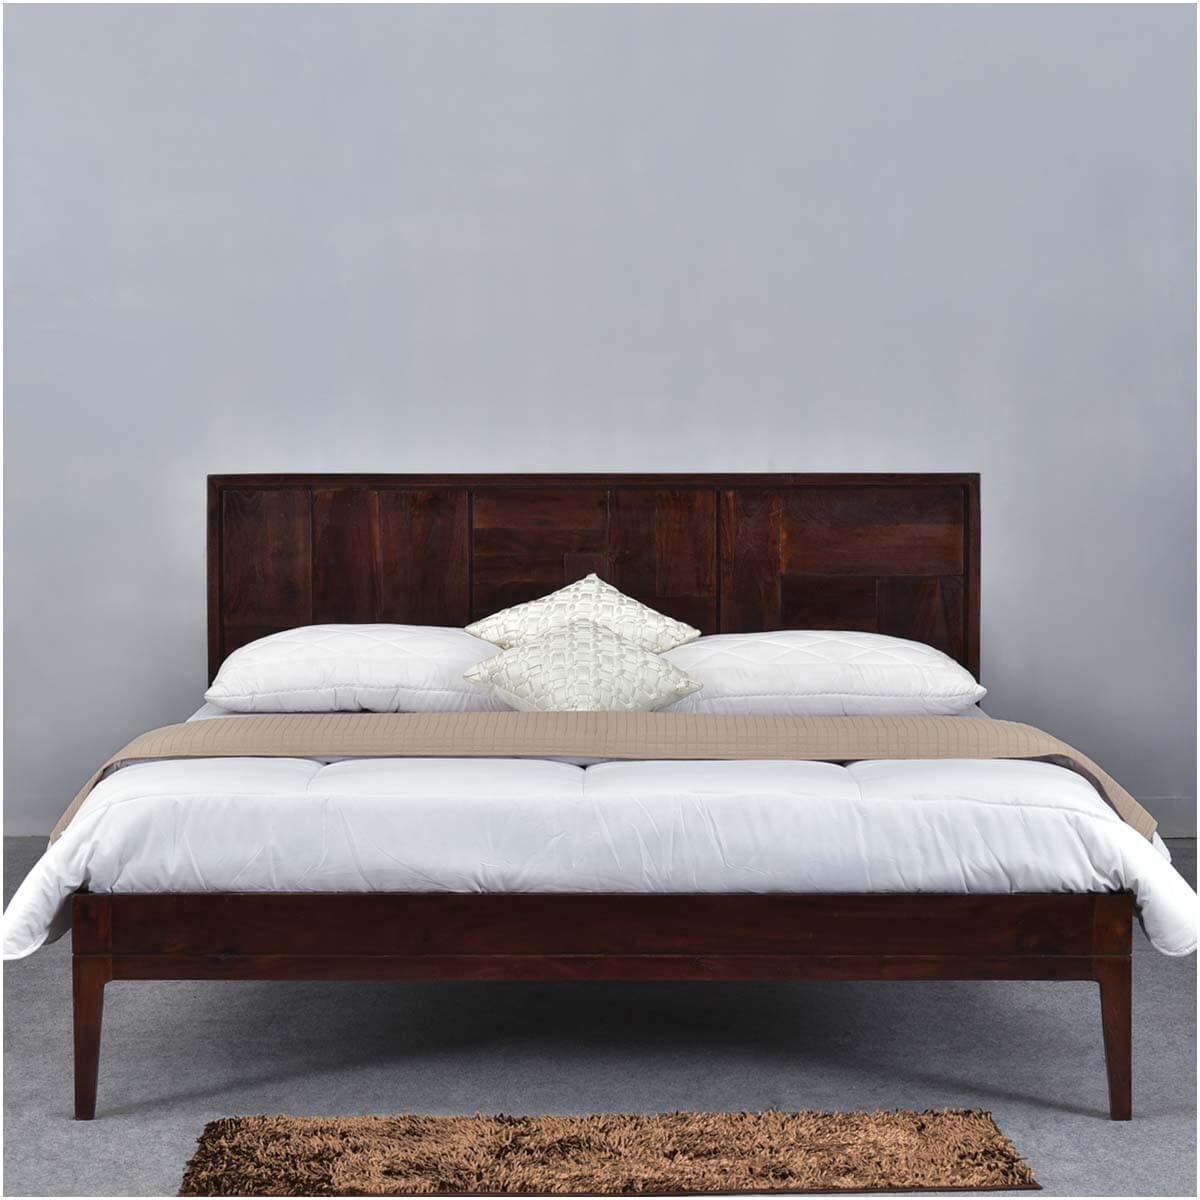 Modern pioneer solid wood platform bed frame w headboard Wood platform bed